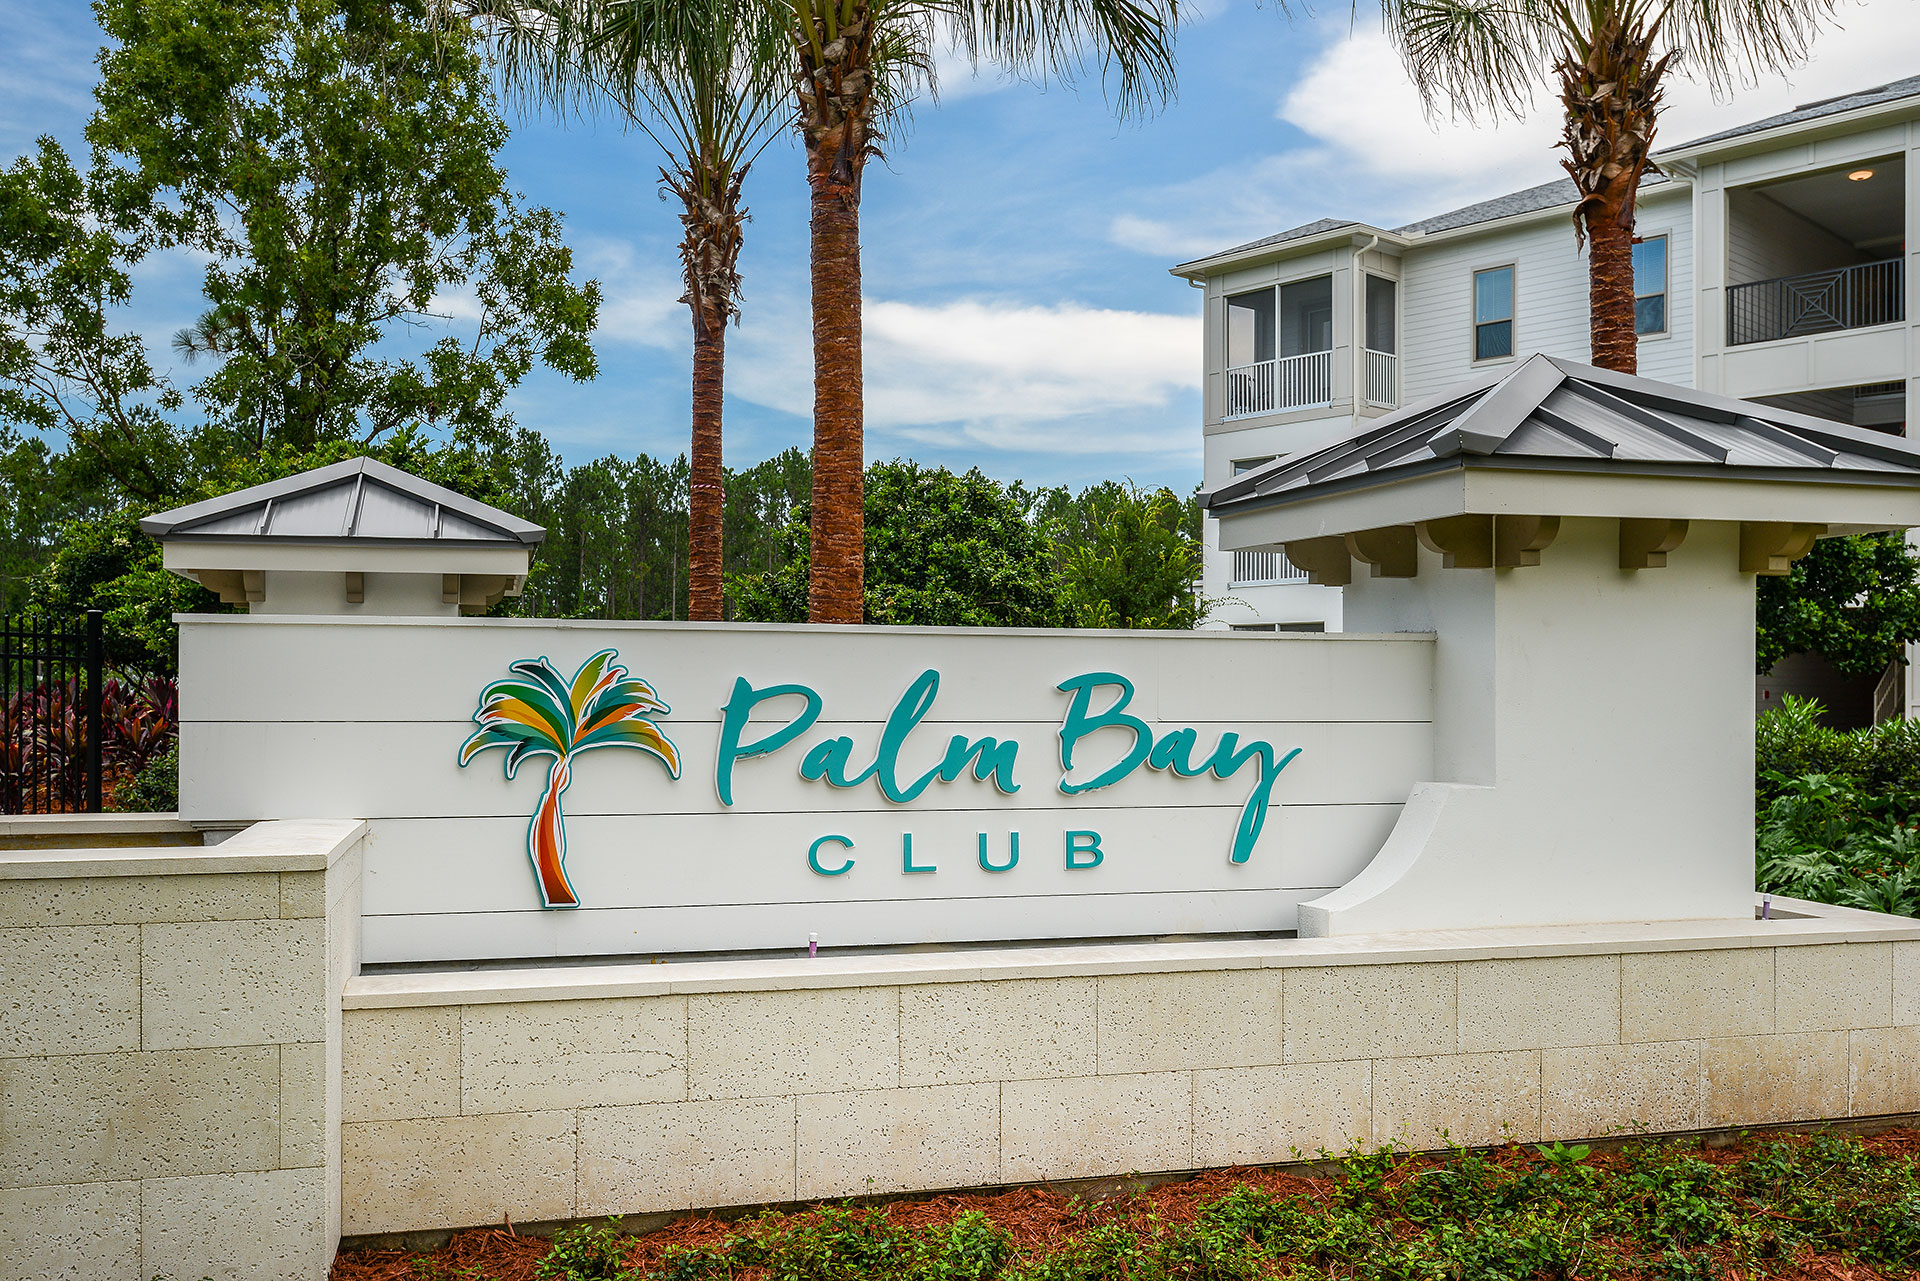 Front sign of Palm Bay Club complex with palm trees